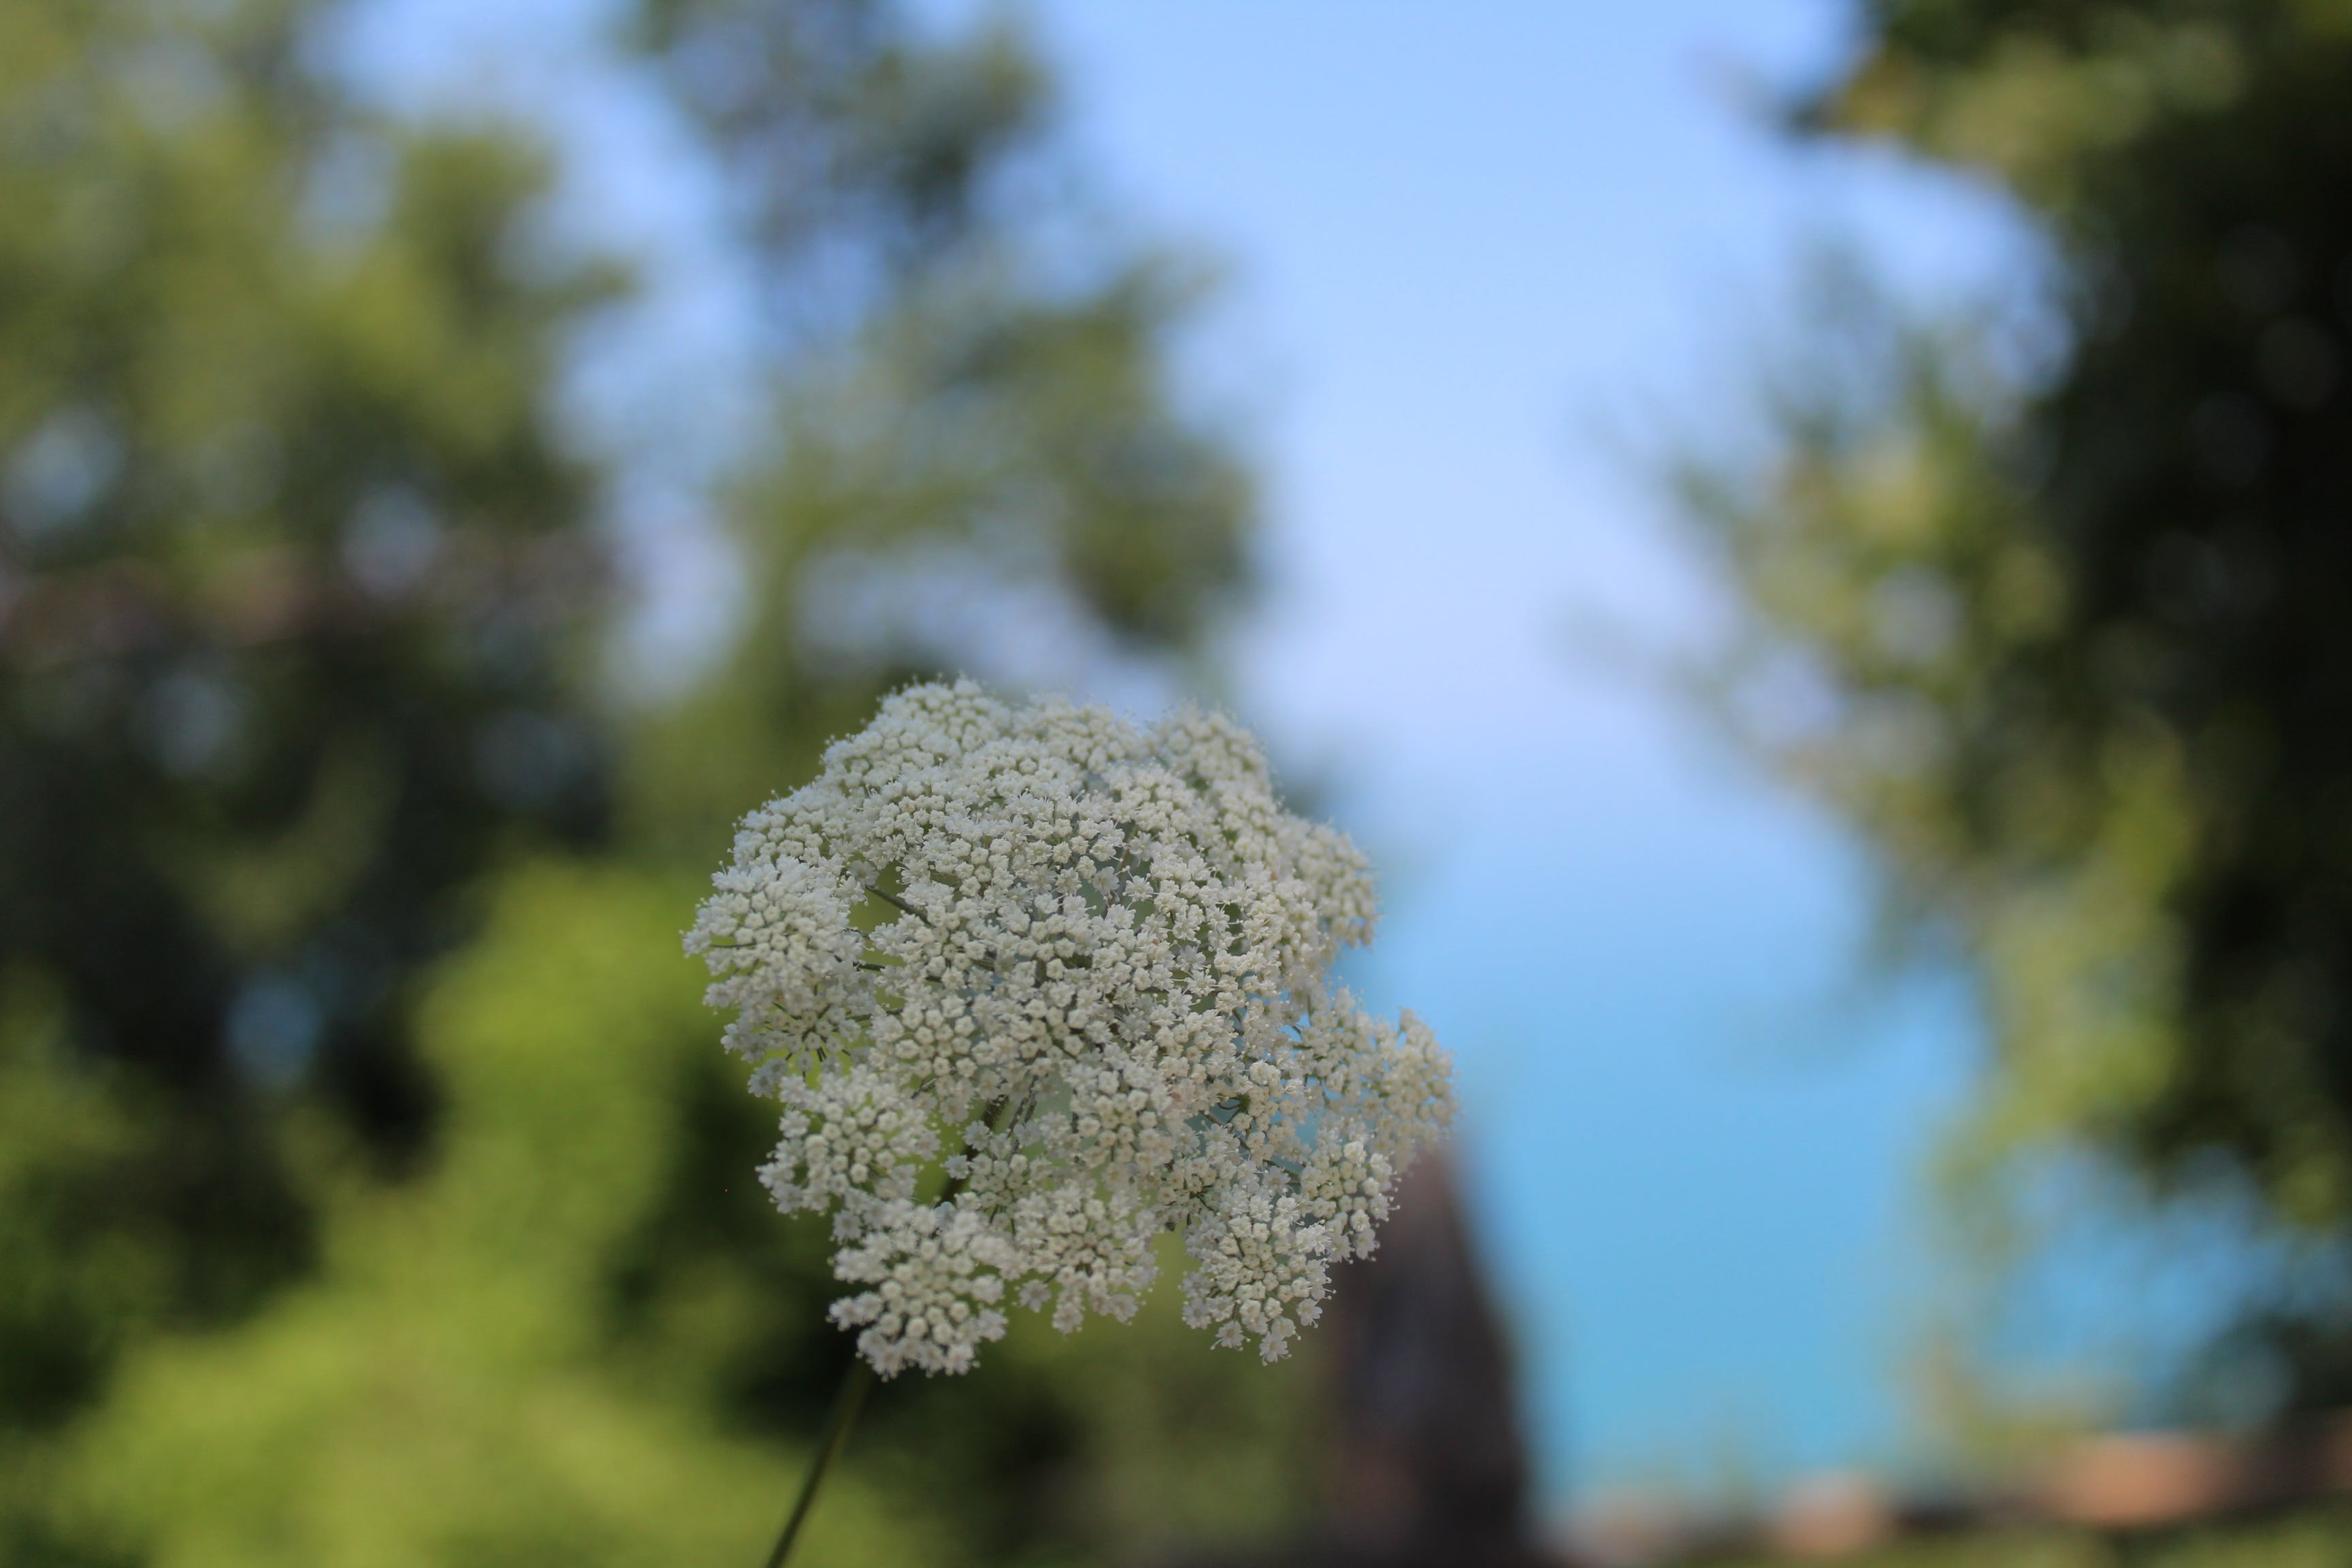 Free stock photo of blurred trees, flower, focus photography of white flower, white